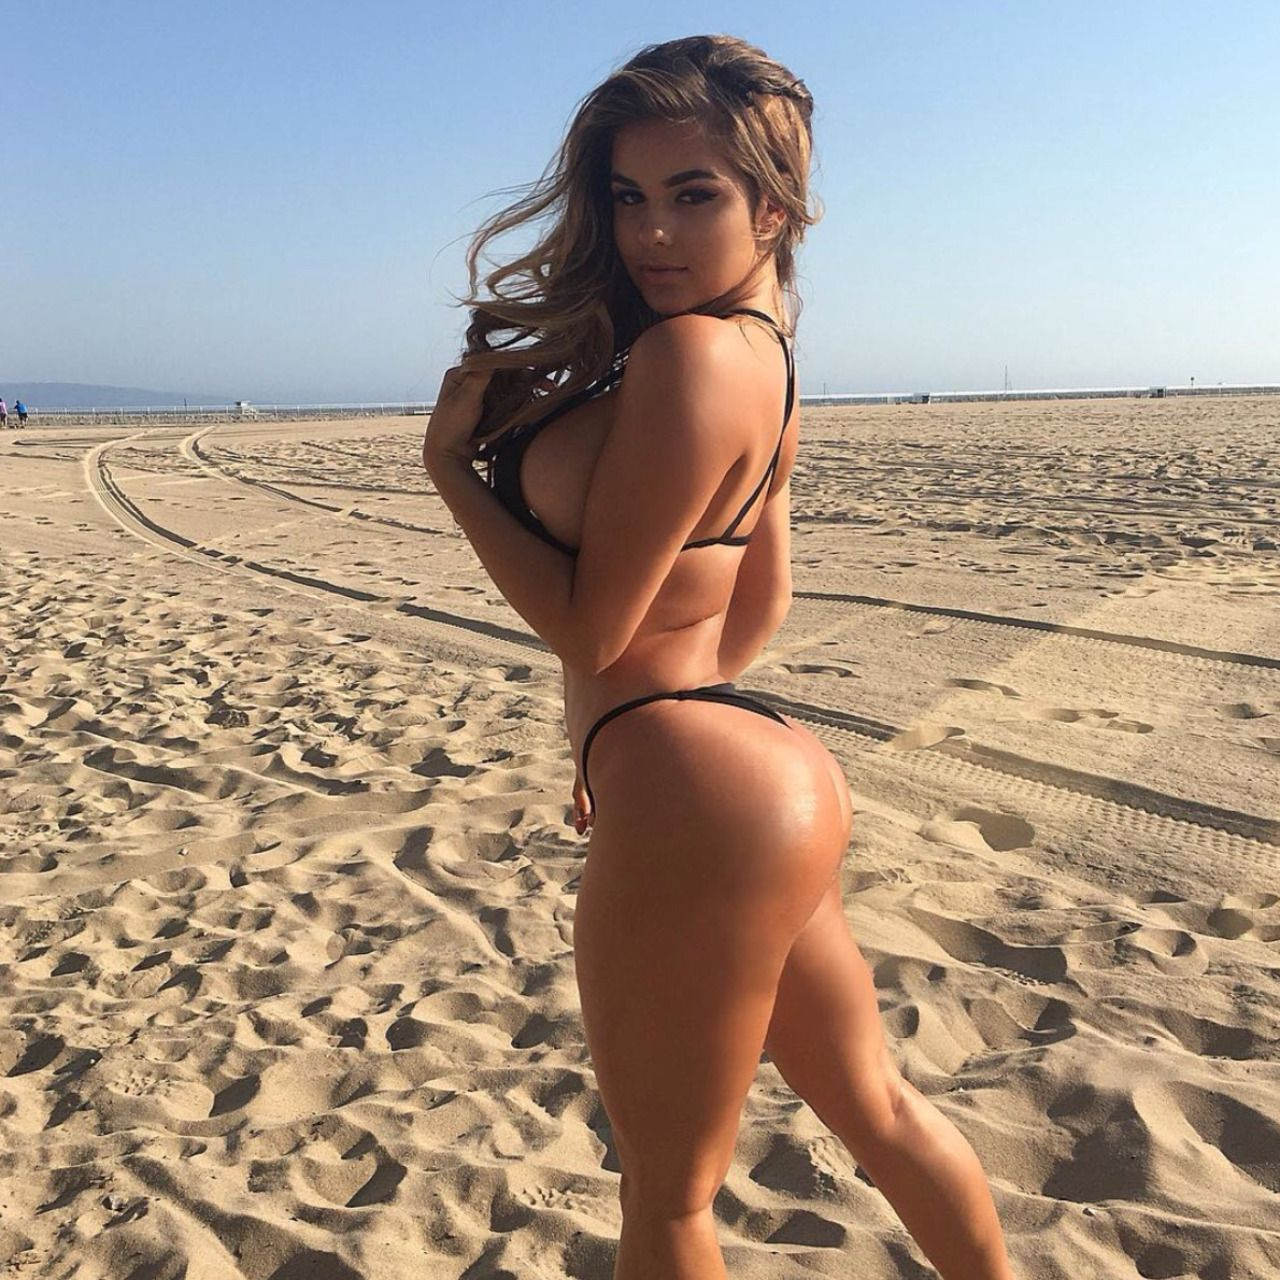 [Amateur Ass] Fresh sand